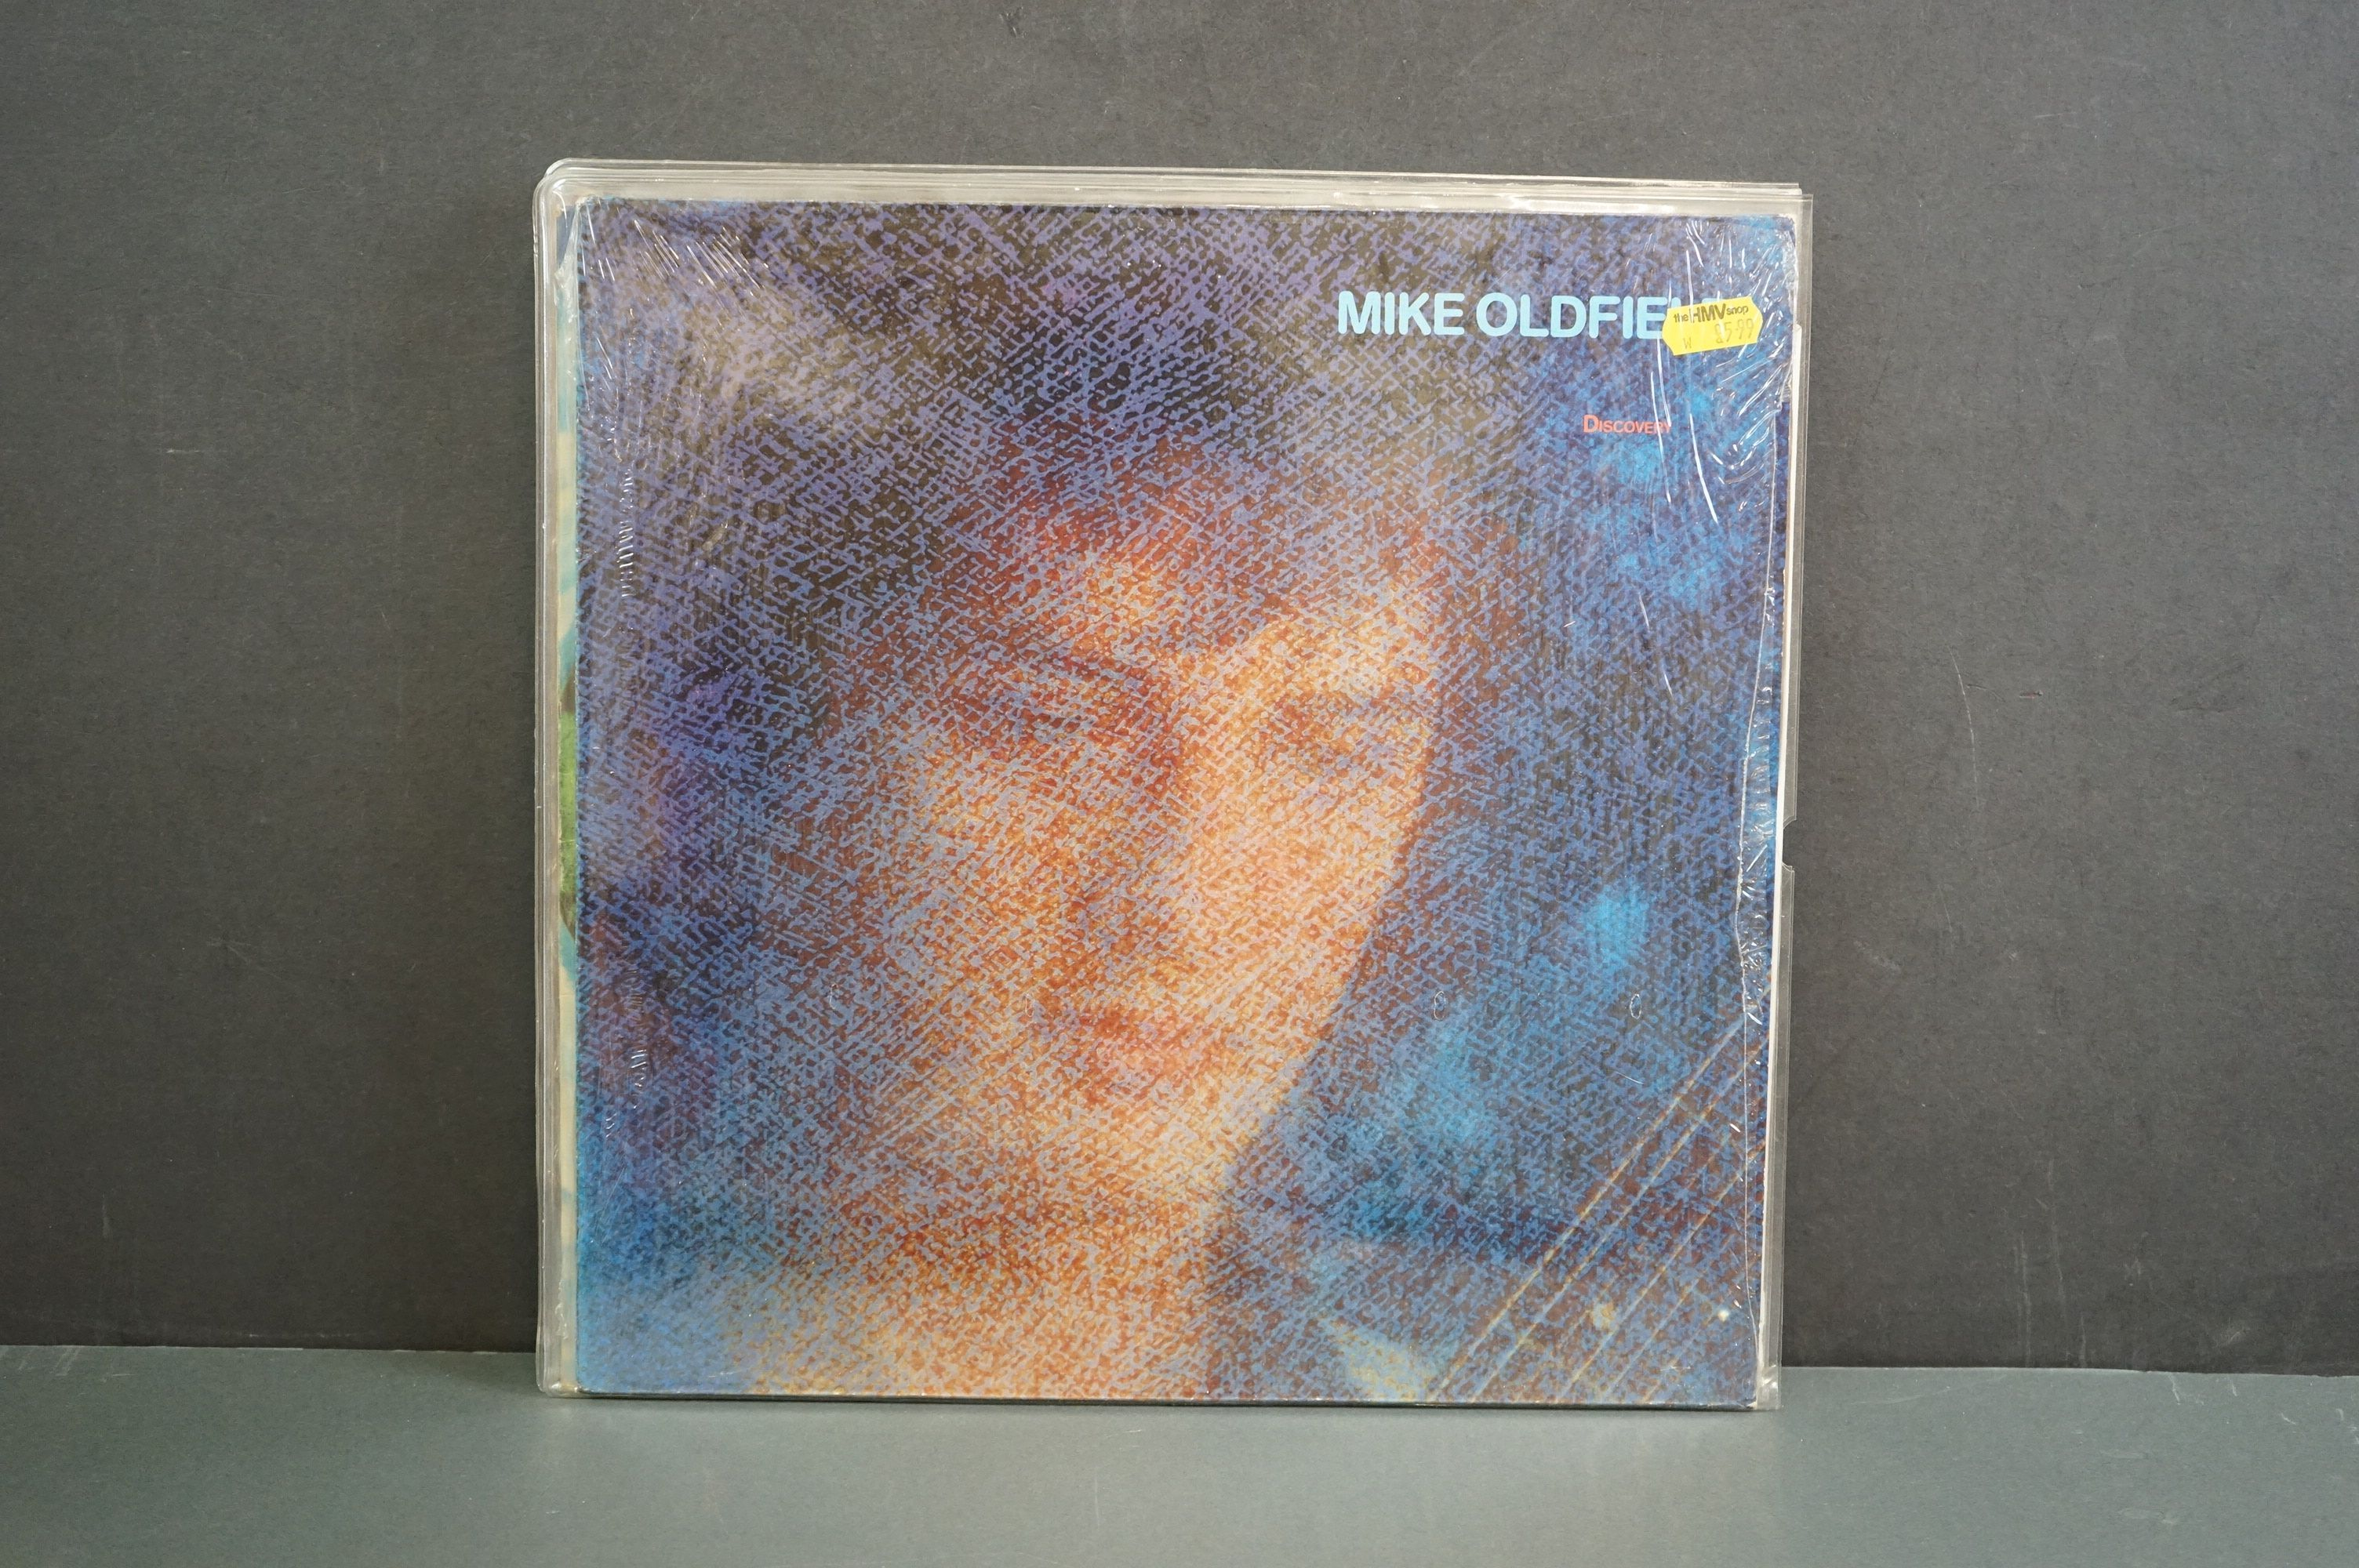 Vinyl - 14 Mike Oldfield LPs to include Tubular Bells, Five Miles Out, Best Of, Discovery etc, - Image 9 of 15